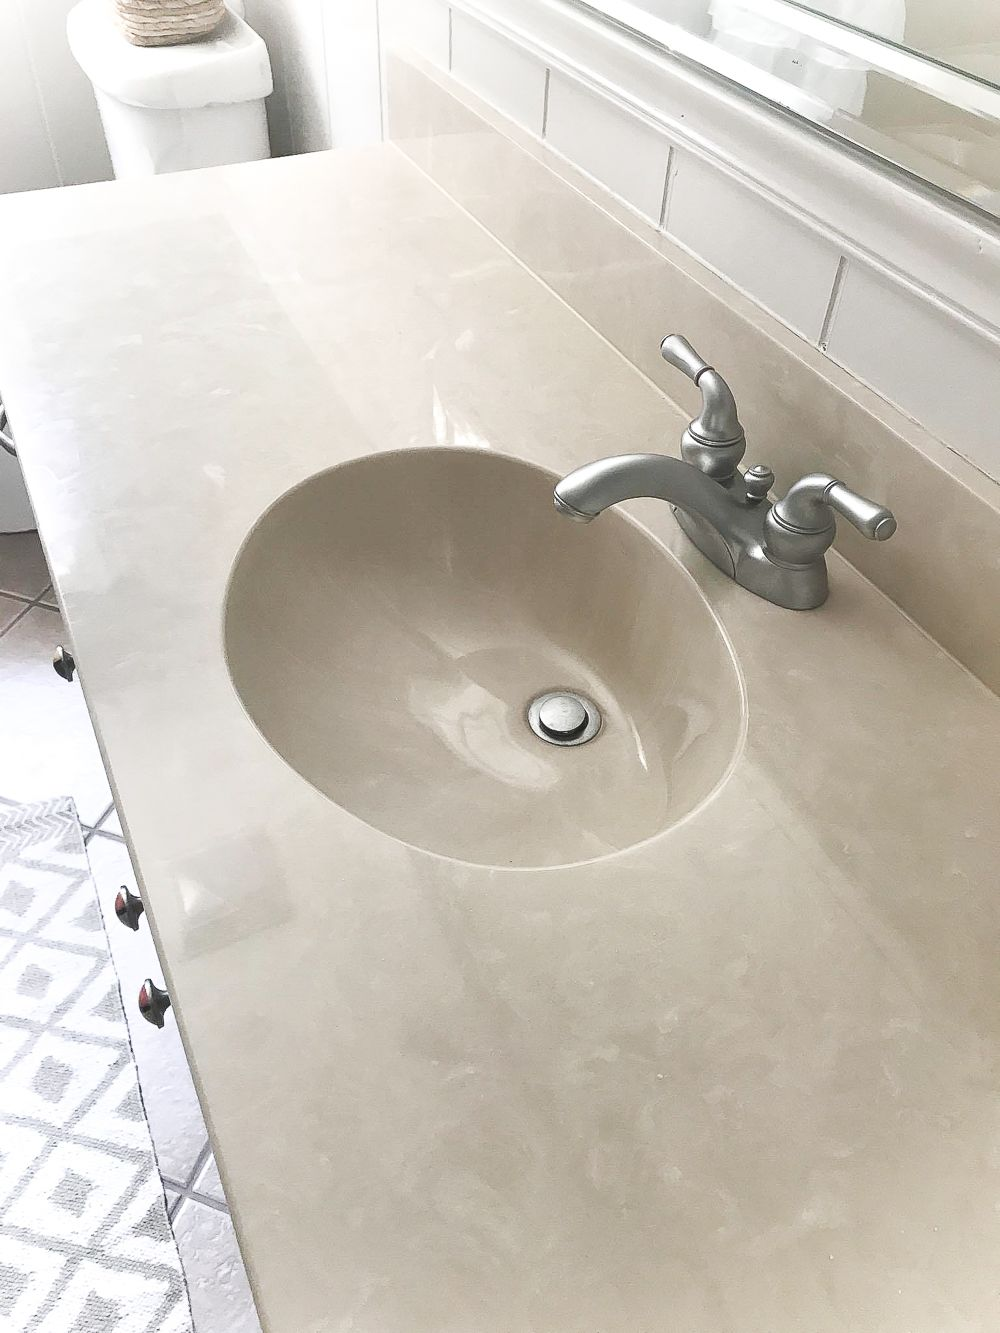 Diy Painted Bathroom Sink Countertop Bless Er House Counter